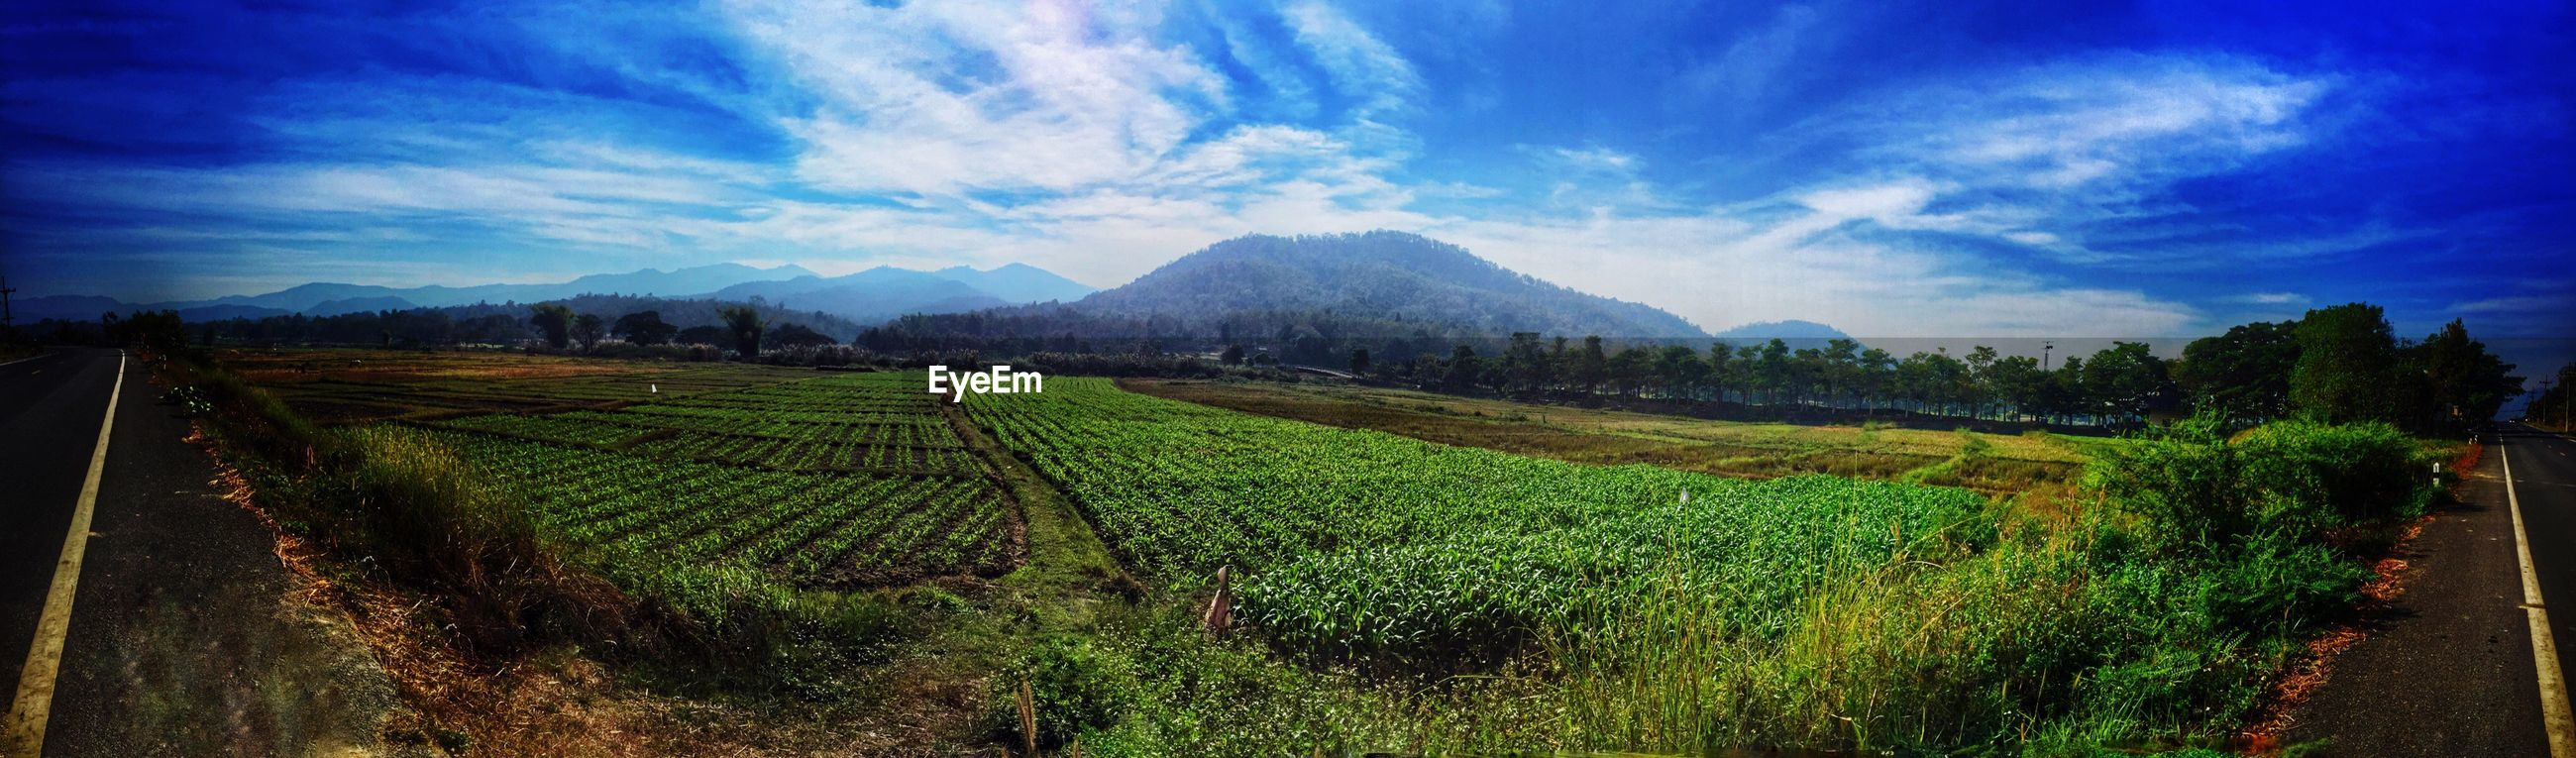 landscape, sky, tranquil scene, field, tranquility, agriculture, rural scene, mountain, beauty in nature, scenics, nature, farm, cloud - sky, growth, grass, plant, panoramic, green color, cloud, blue